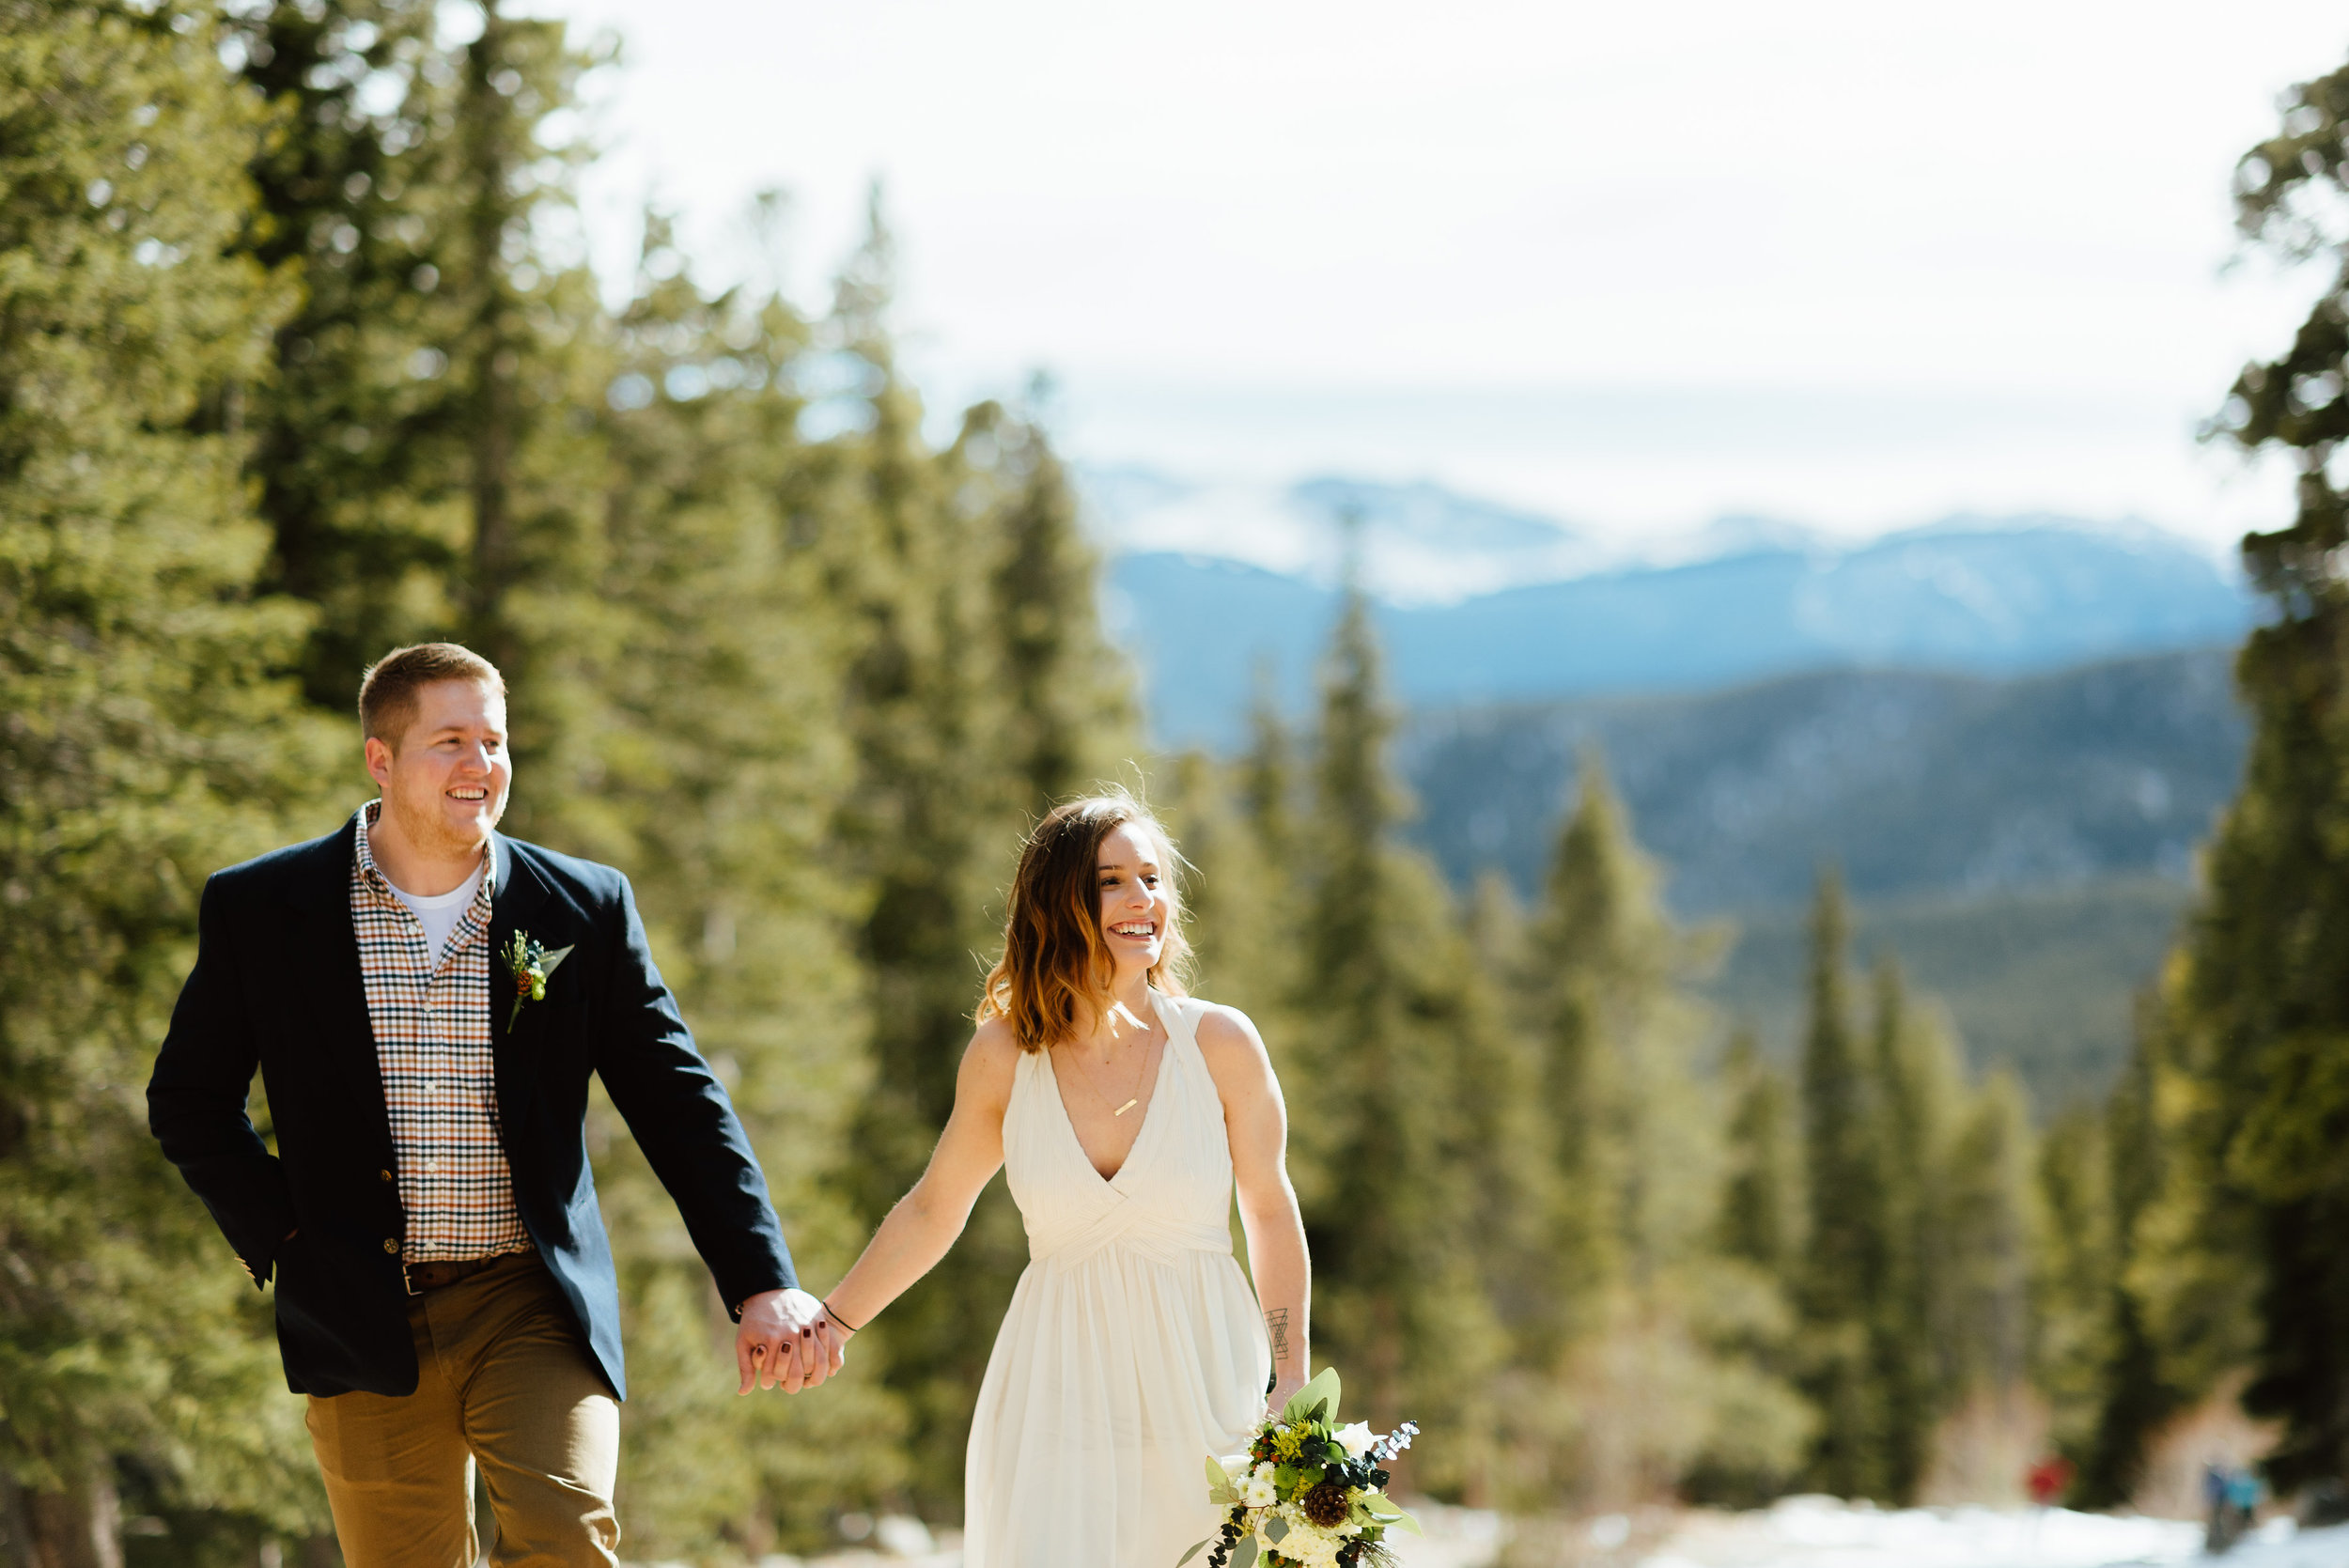 I love how casual this bride and groom's wedding attire is. His casual, hipster plaid shirt looks great next to her flowy ivory dress!| Intimate wedding photos by mountain elopement photographer, Maddie Mae.